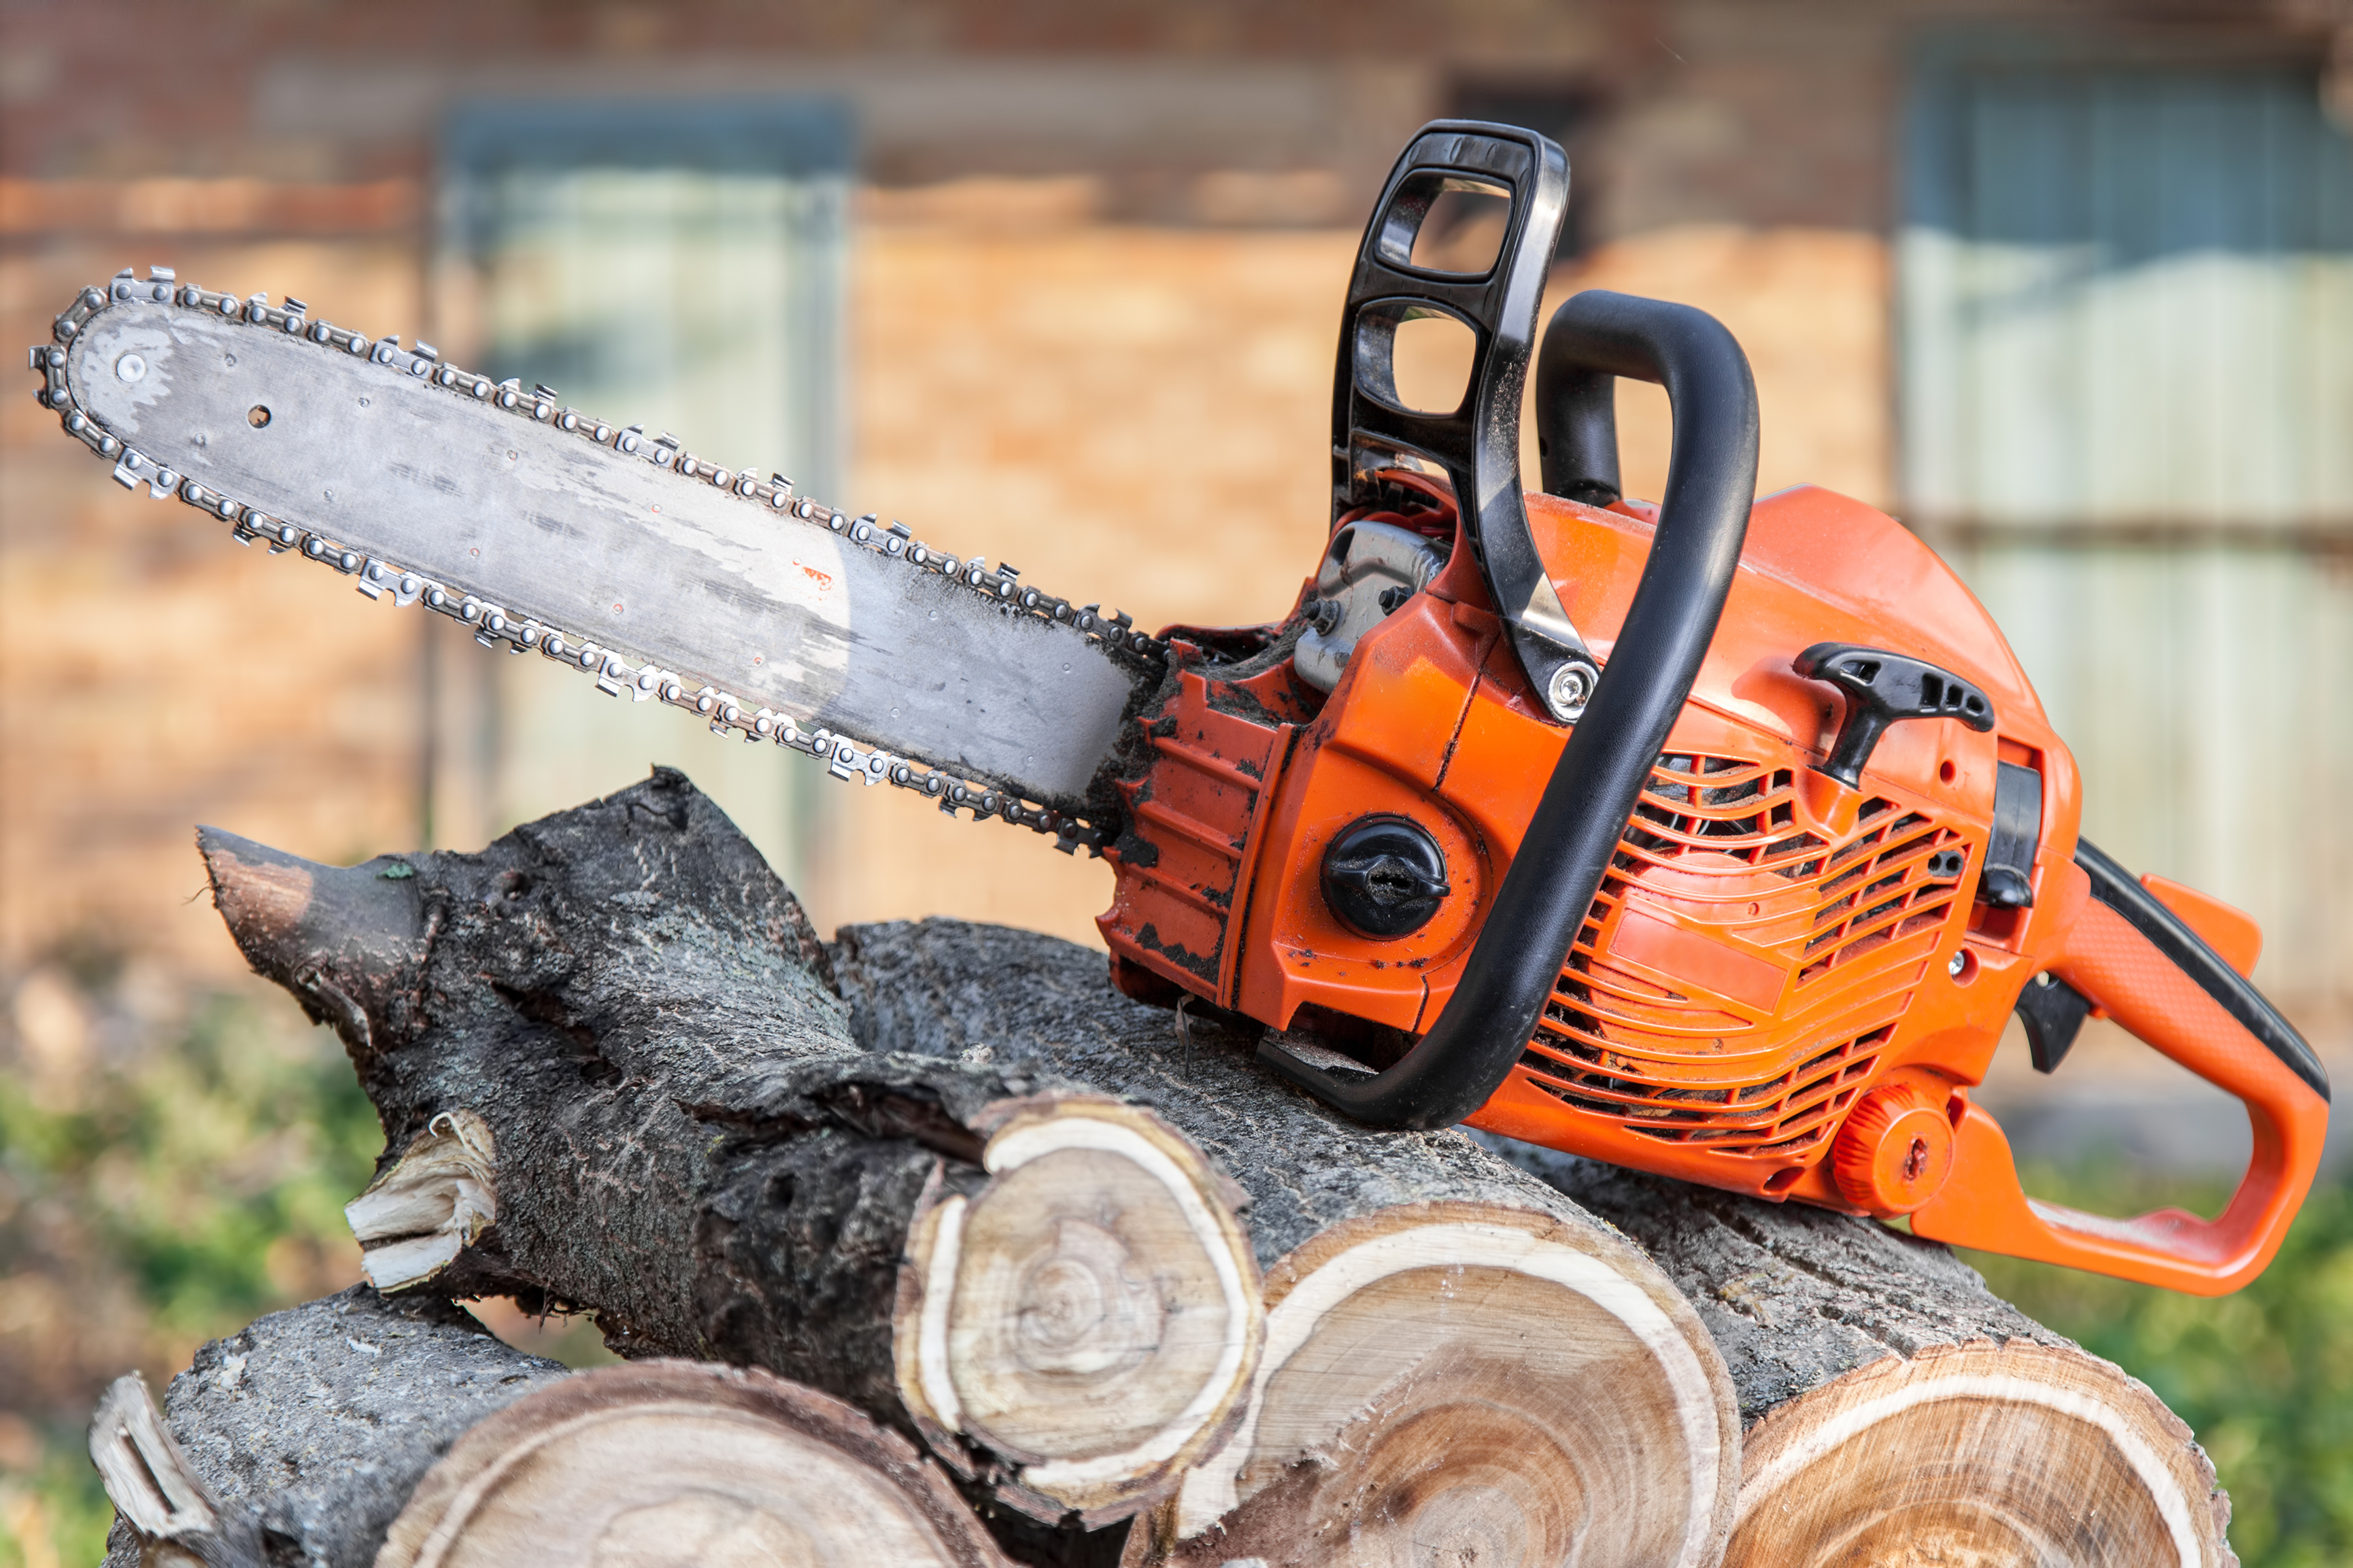 What Size File Do I Need for My Chain Saw? | Hunker